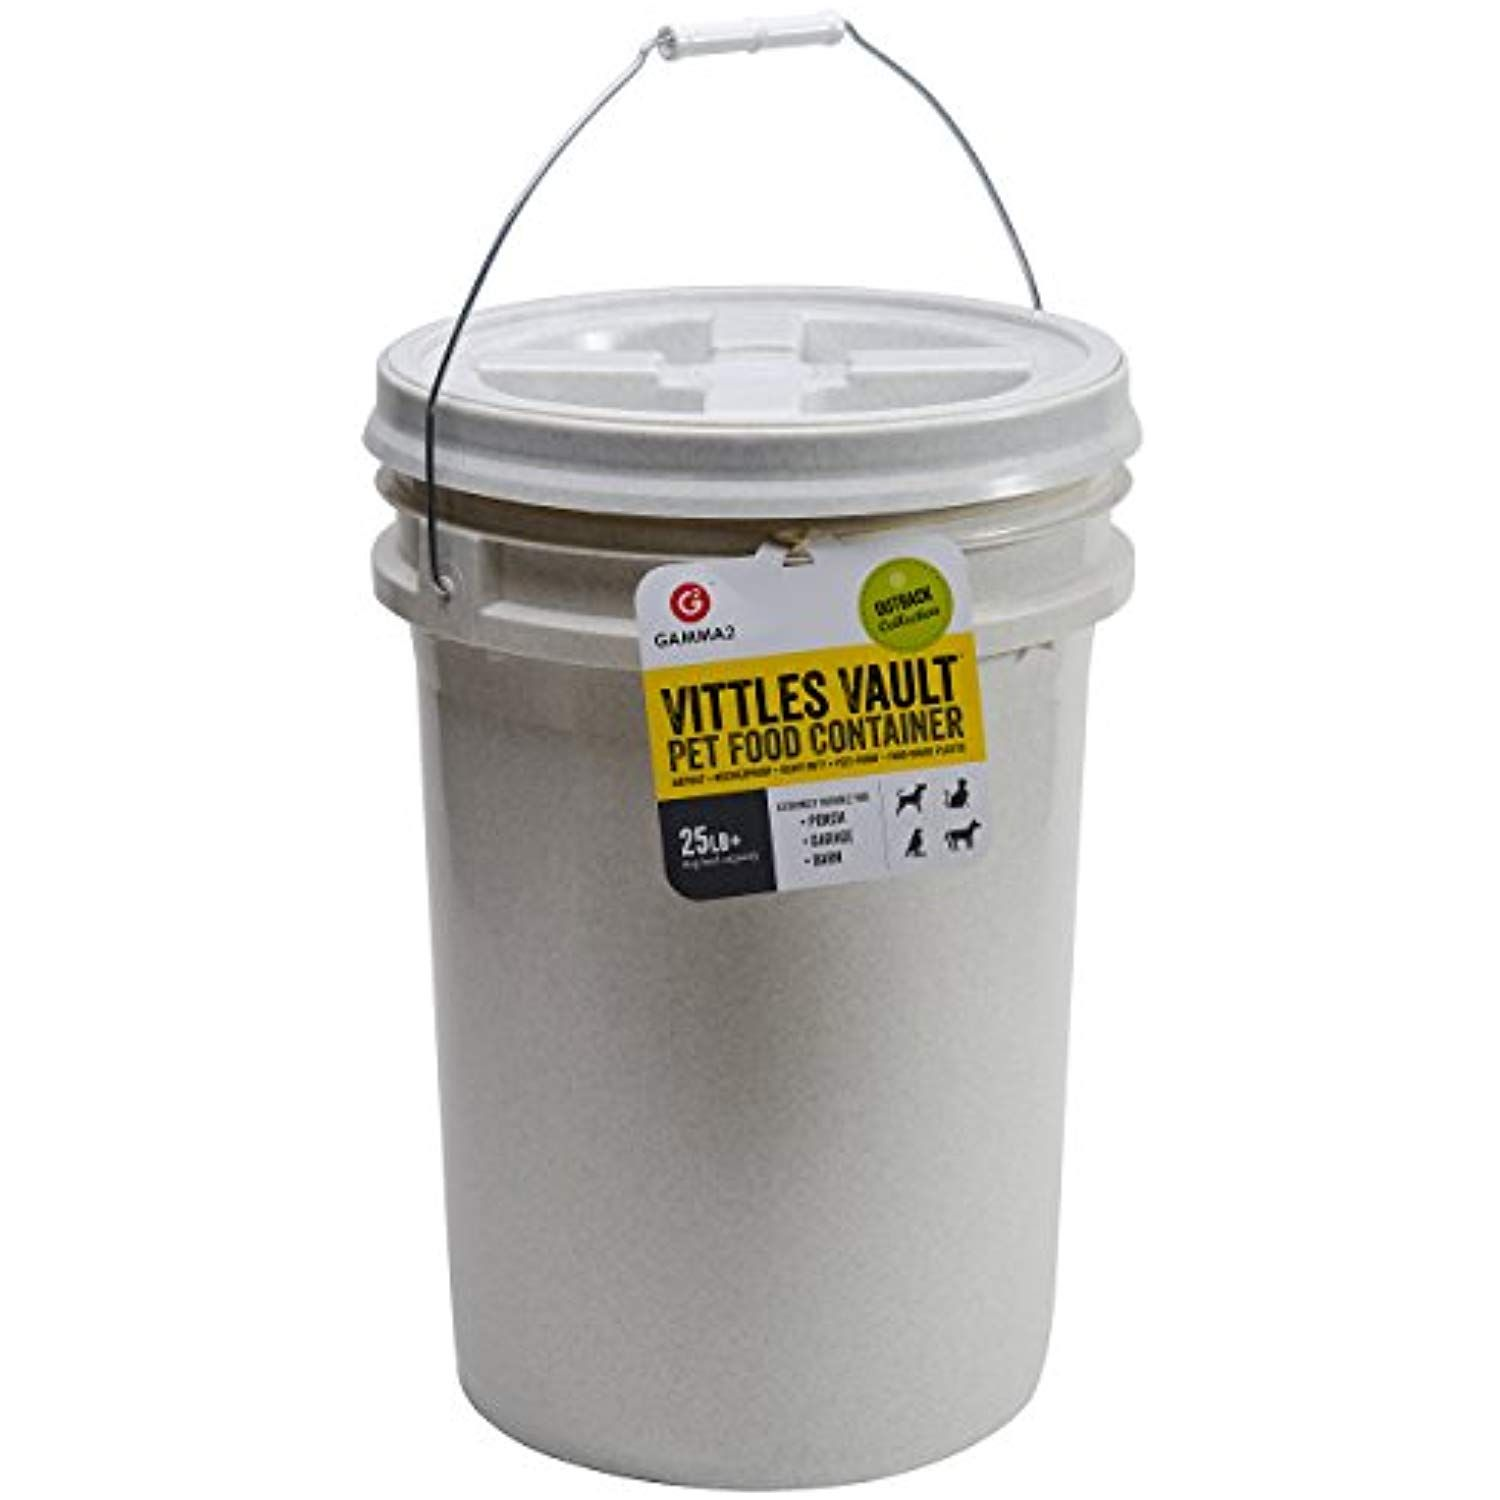 Gamma2 Vittles Vault 25 Lb Airtight Bucket Container For Food Storage Food Grade And Bpa Pet Food Storage Container Pet Food Storage Airtight Pet Food Storage